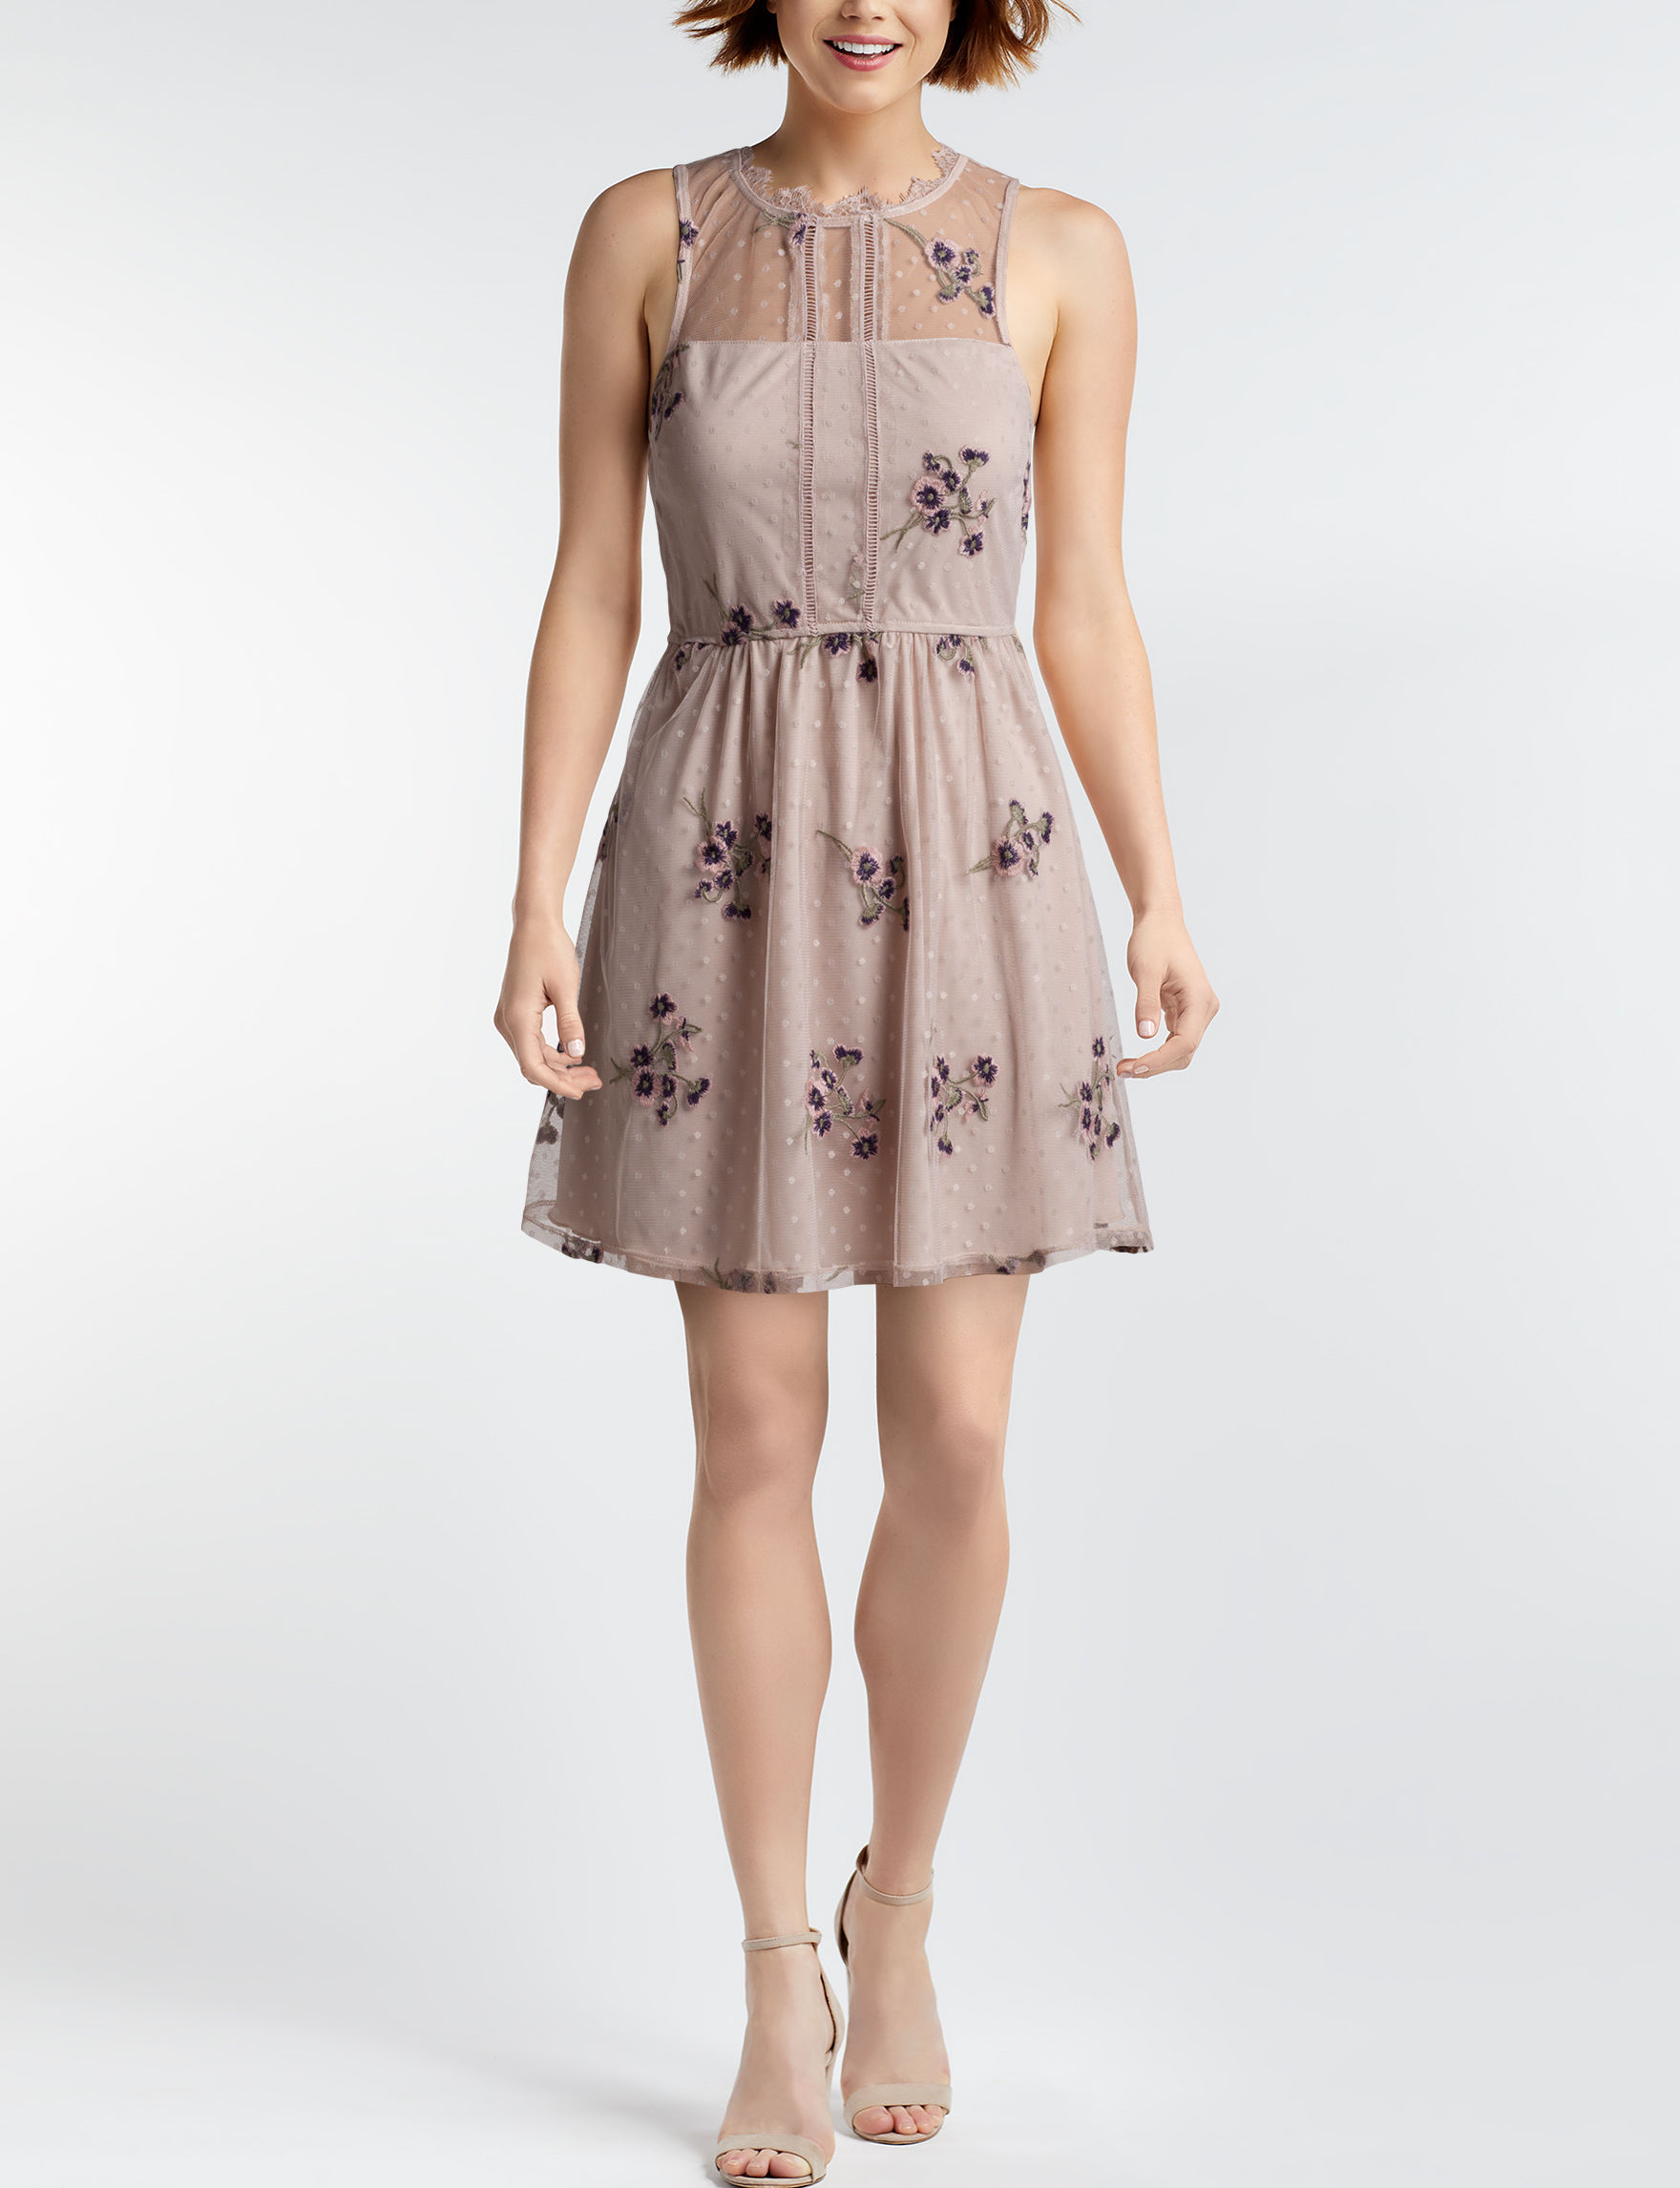 Speechless Ivory Everyday & Casual Shift Dresses